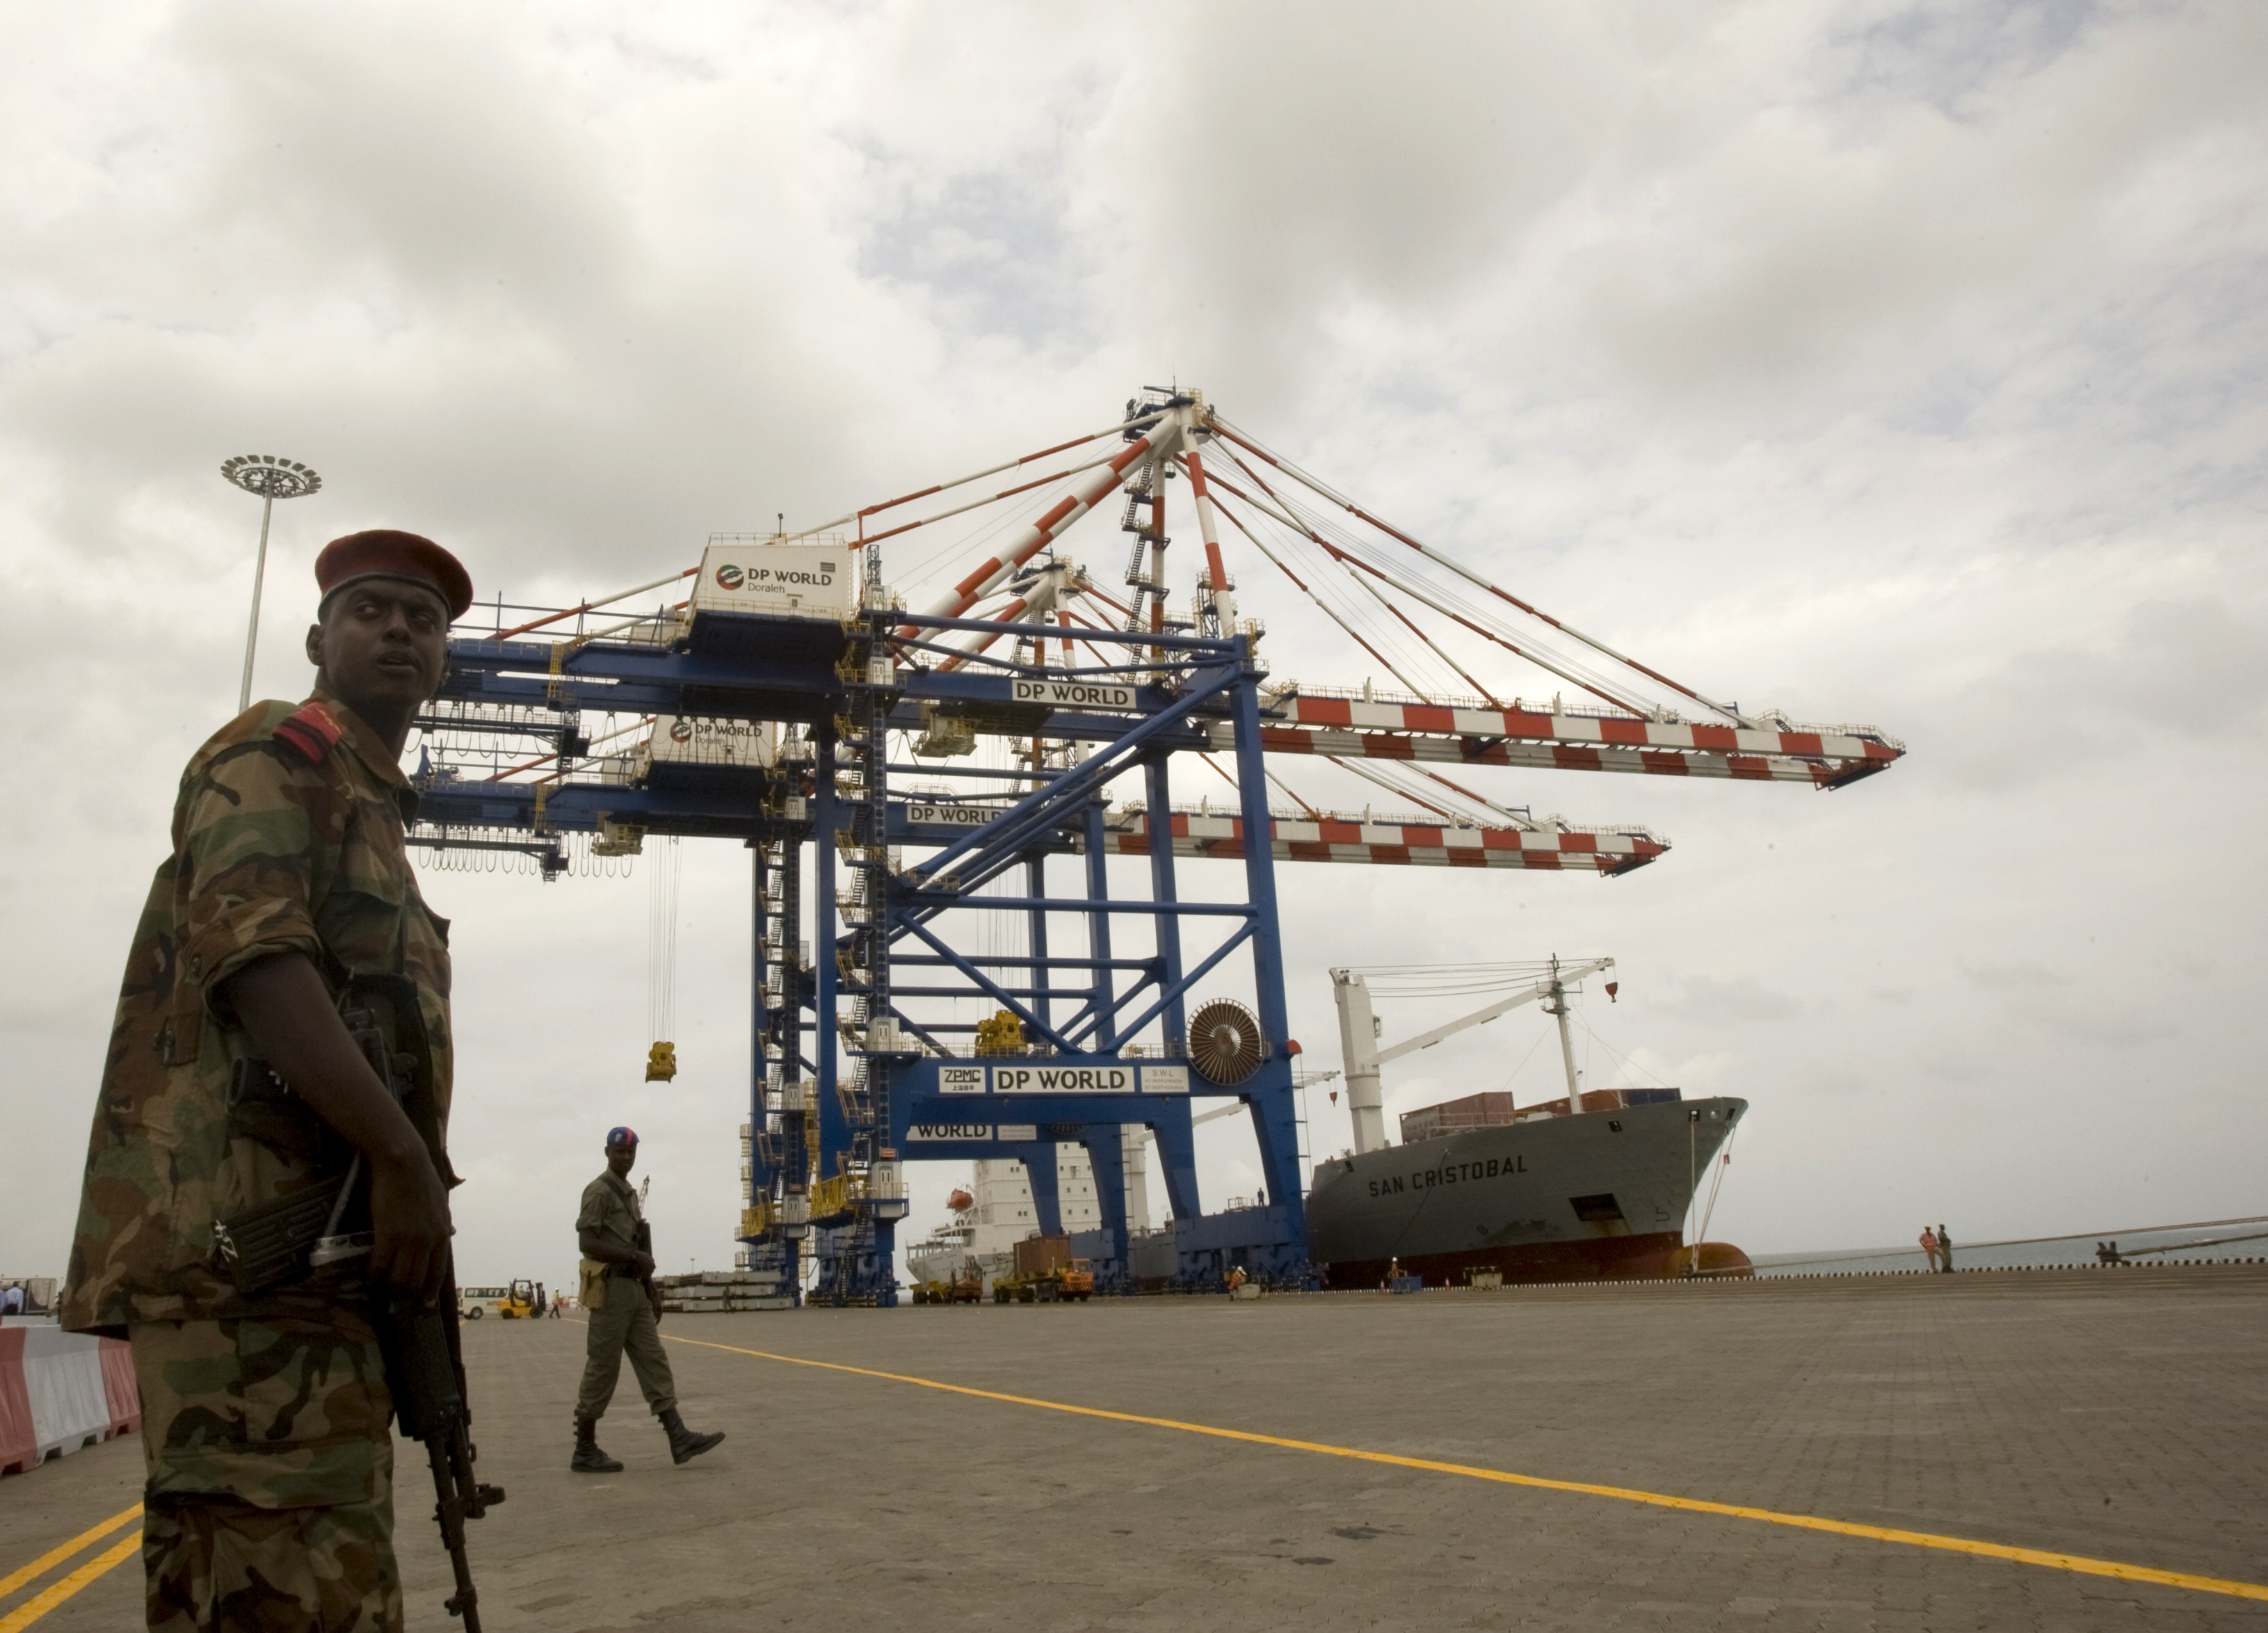 A Djibouti policeman stands guard during the opening ceremony of Dubai-based port operator DP World's Doraleh container terminal in Djibouti port February 7, 2009.